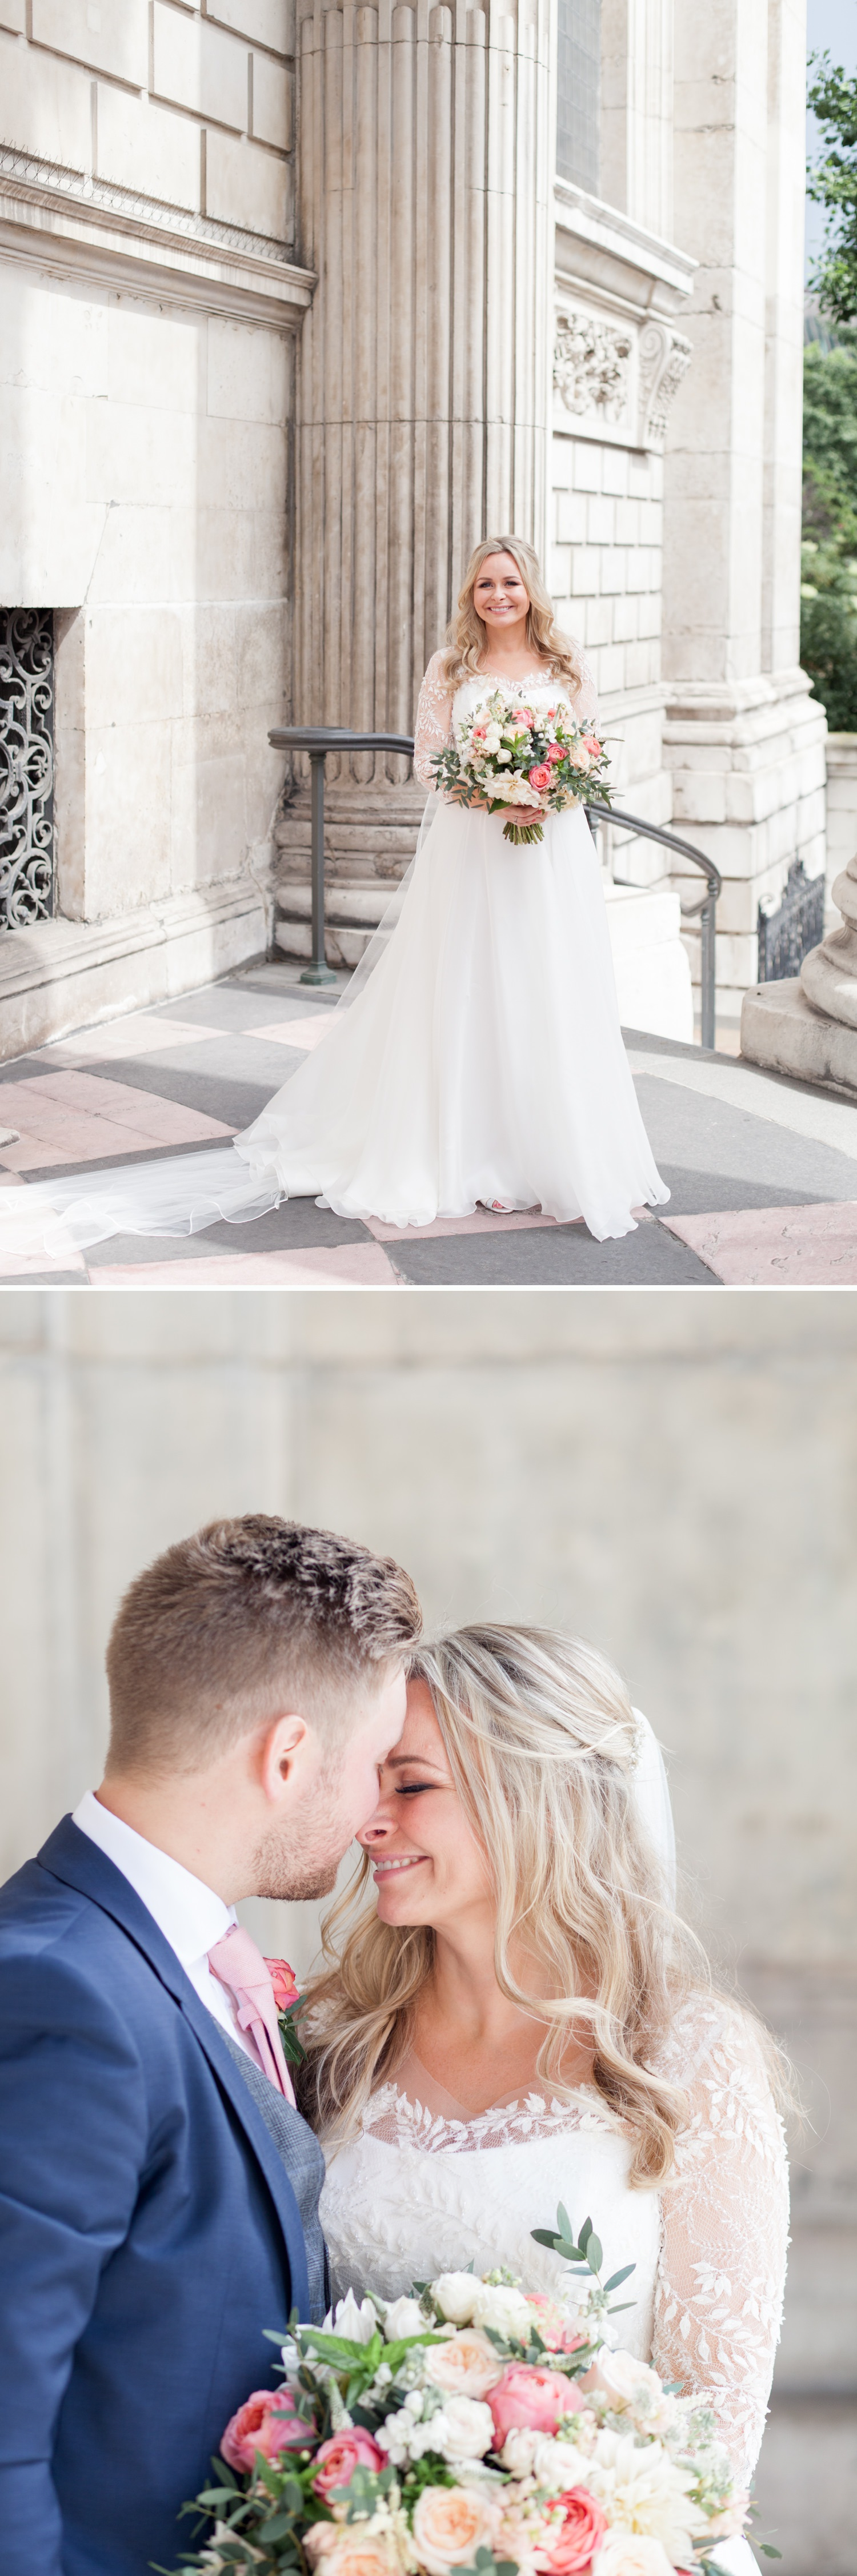 Charlotte & Adam's St. Paul's Cathedral wedding - a bride in a Suzanne Neville gown